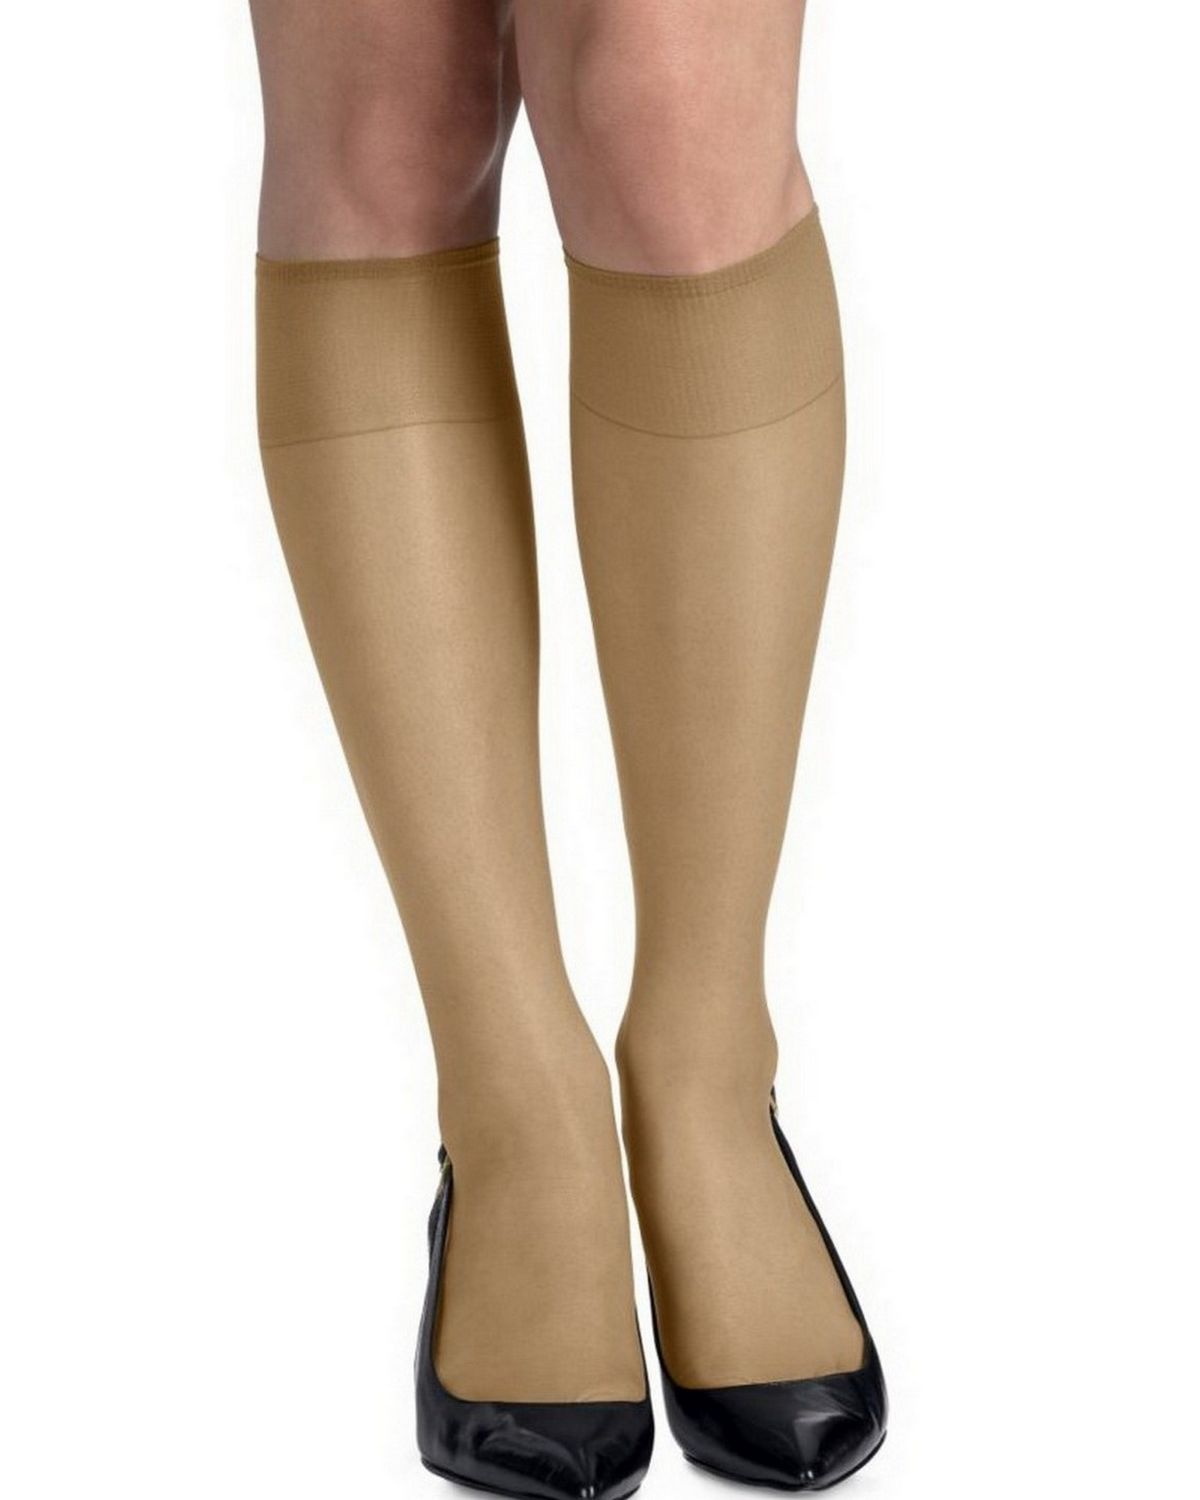 Hanes 00775 Silk Reflections Silky Sheer Knee Highs with Reinforced Toe 2-Pack - Natural - ONESIZE 00775